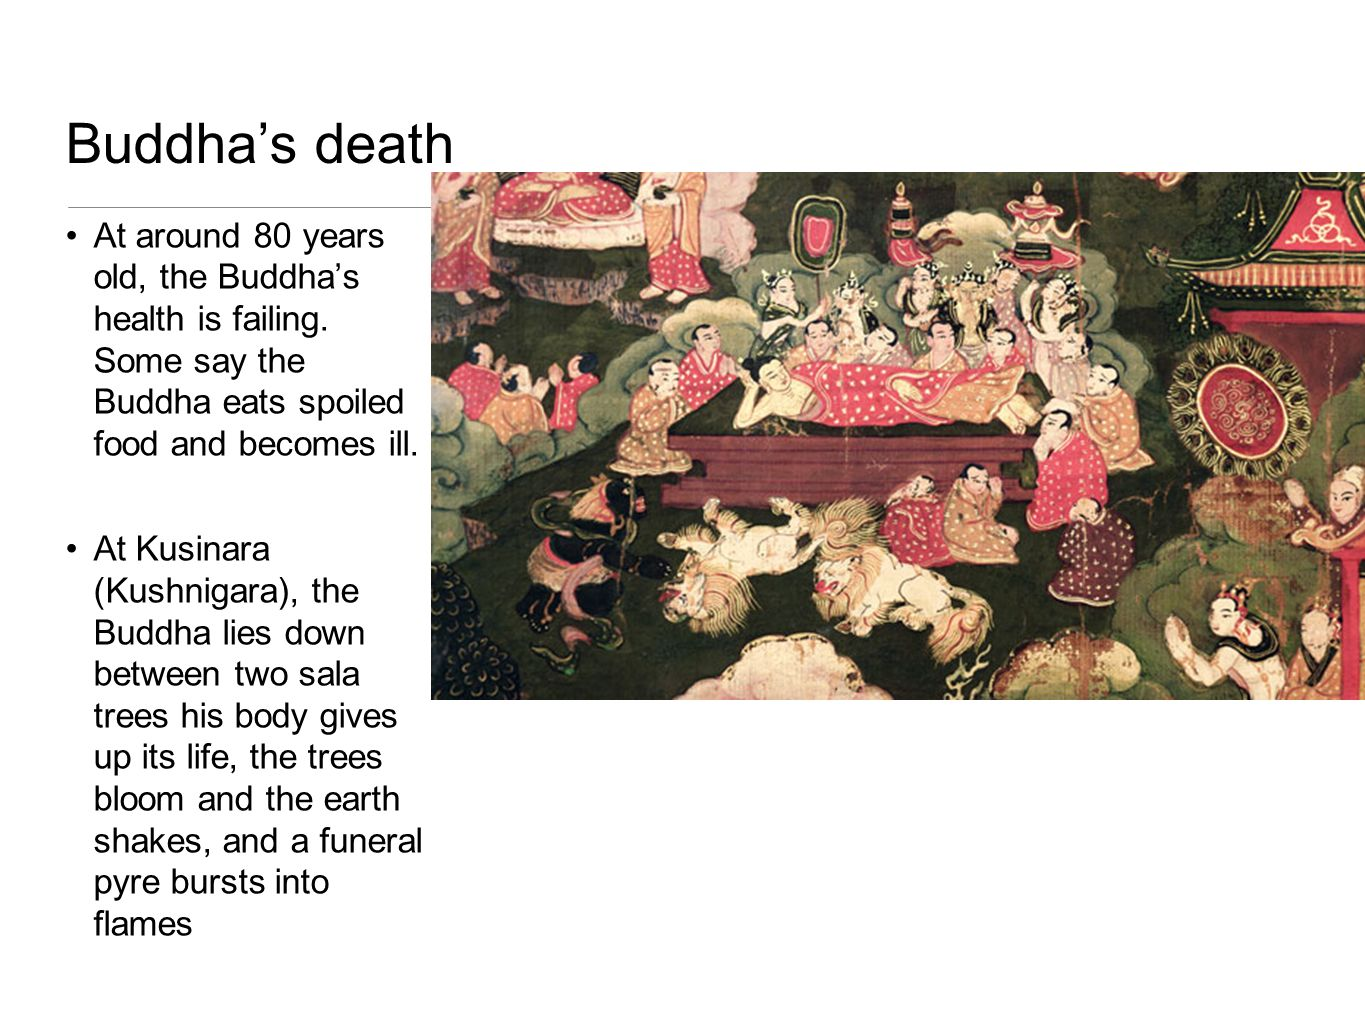 Buddha's death At around 80 years old, the Buddha's health is failing. Some say the Buddha eats spoiled food and becomes ill.